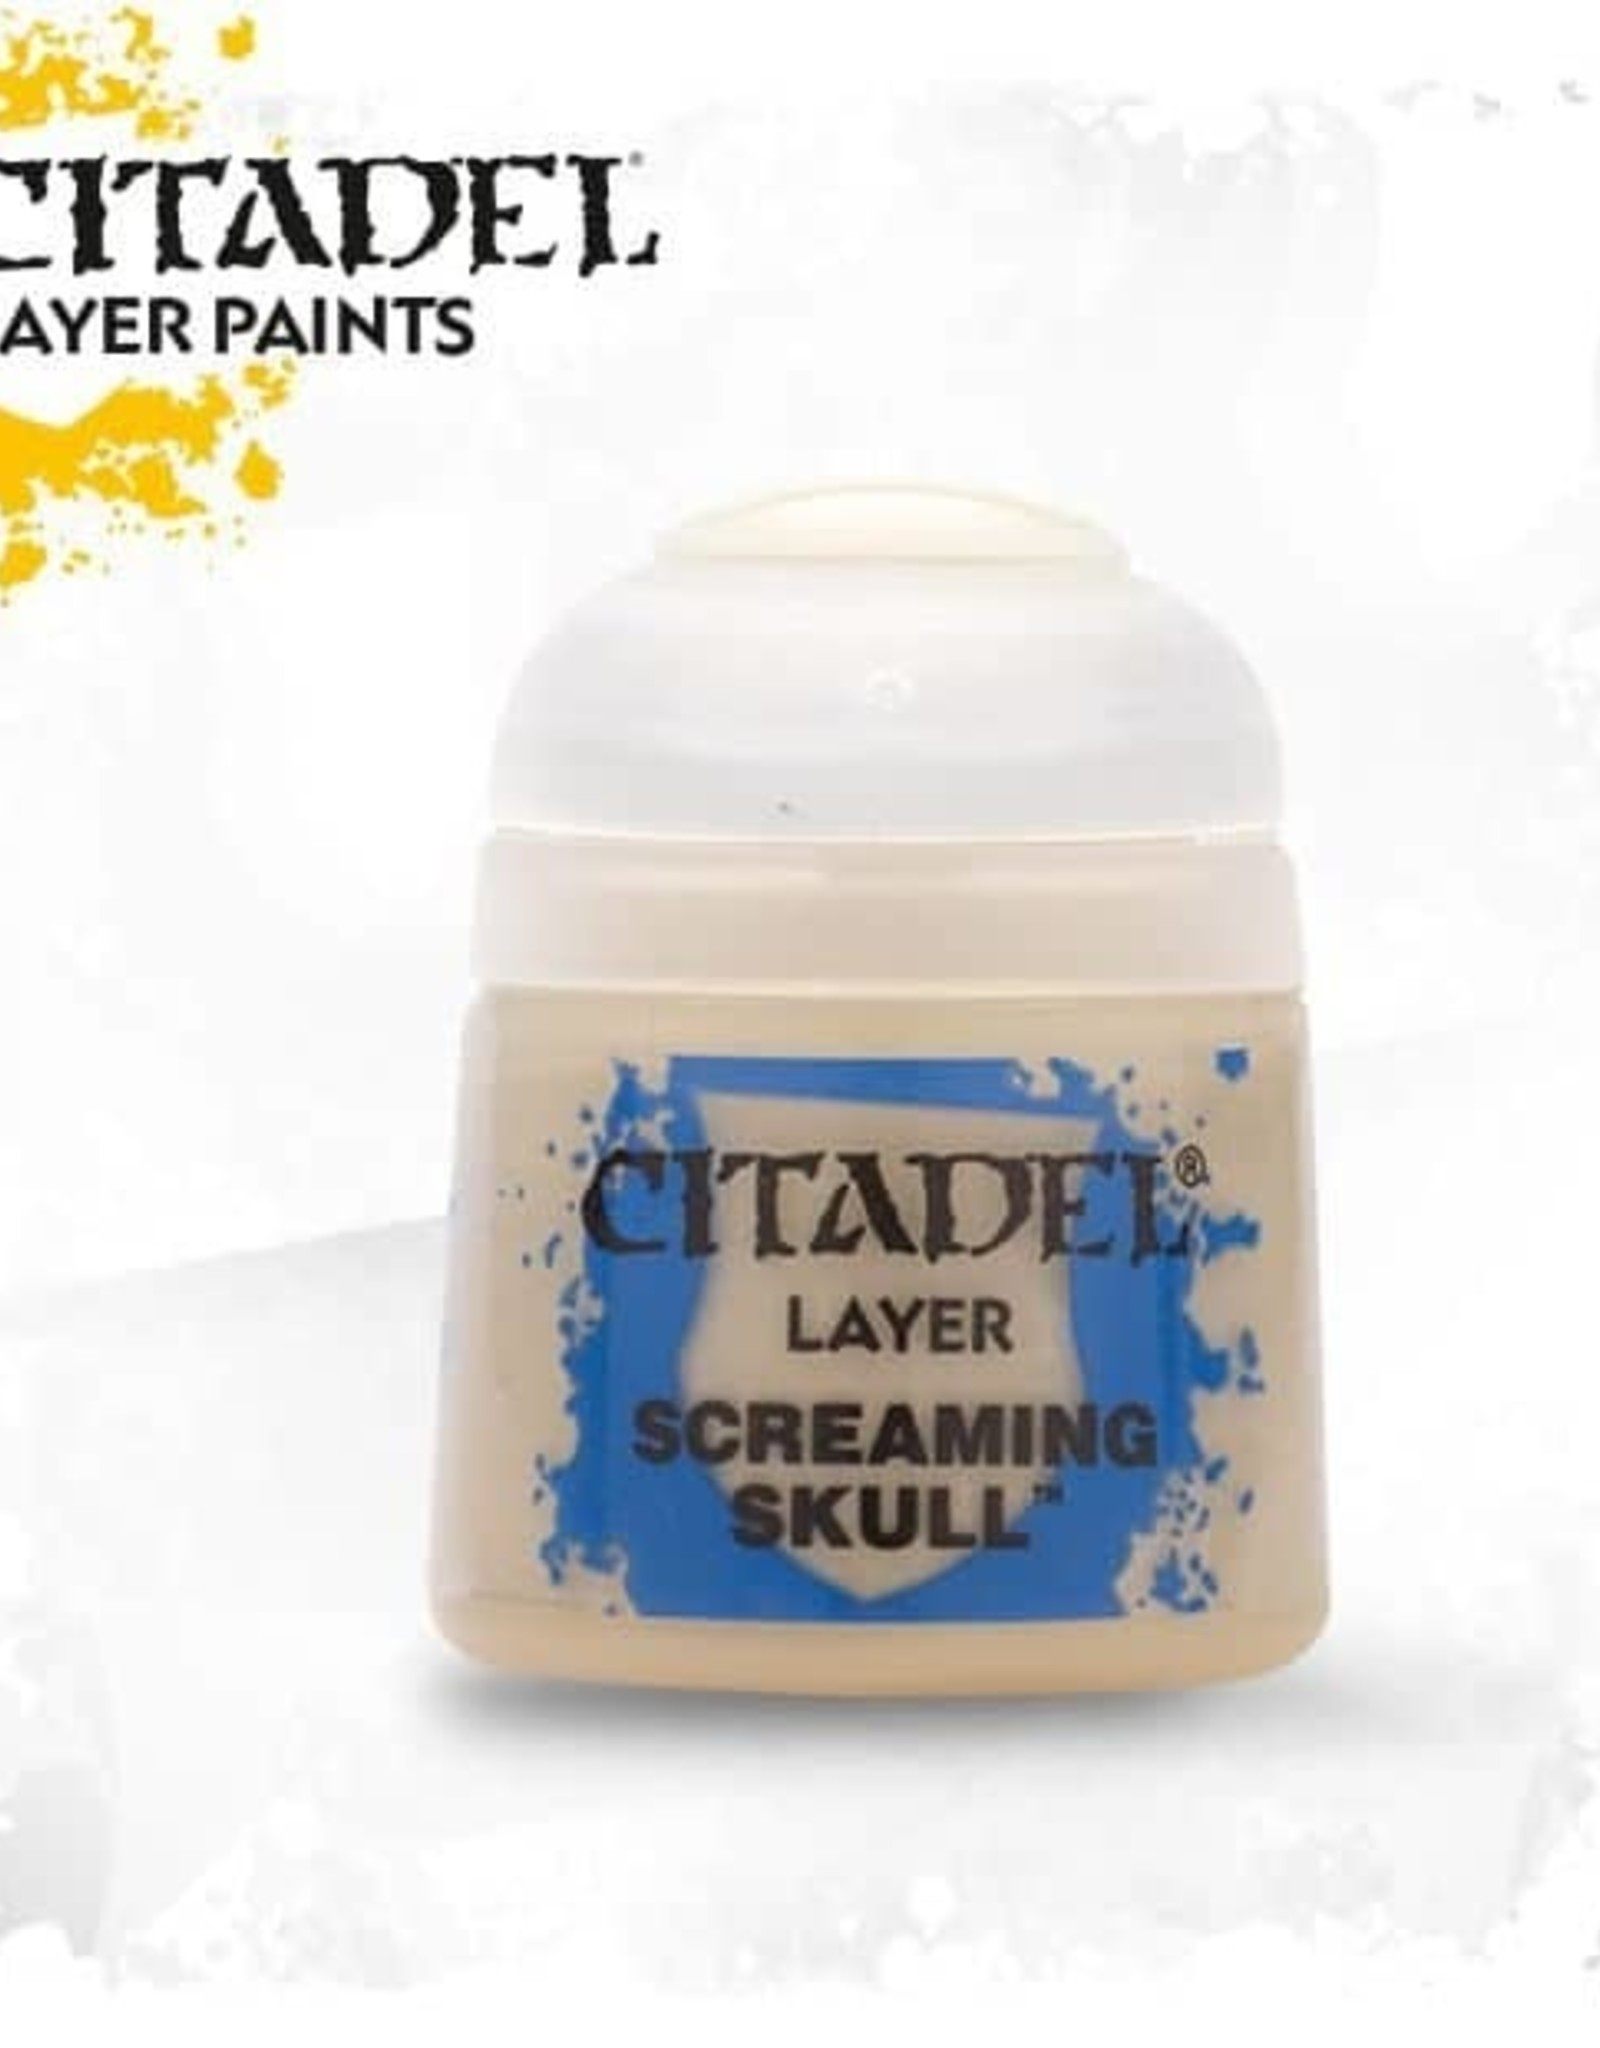 Games Workshop Citadel Paint: Layer - Screaming Skull